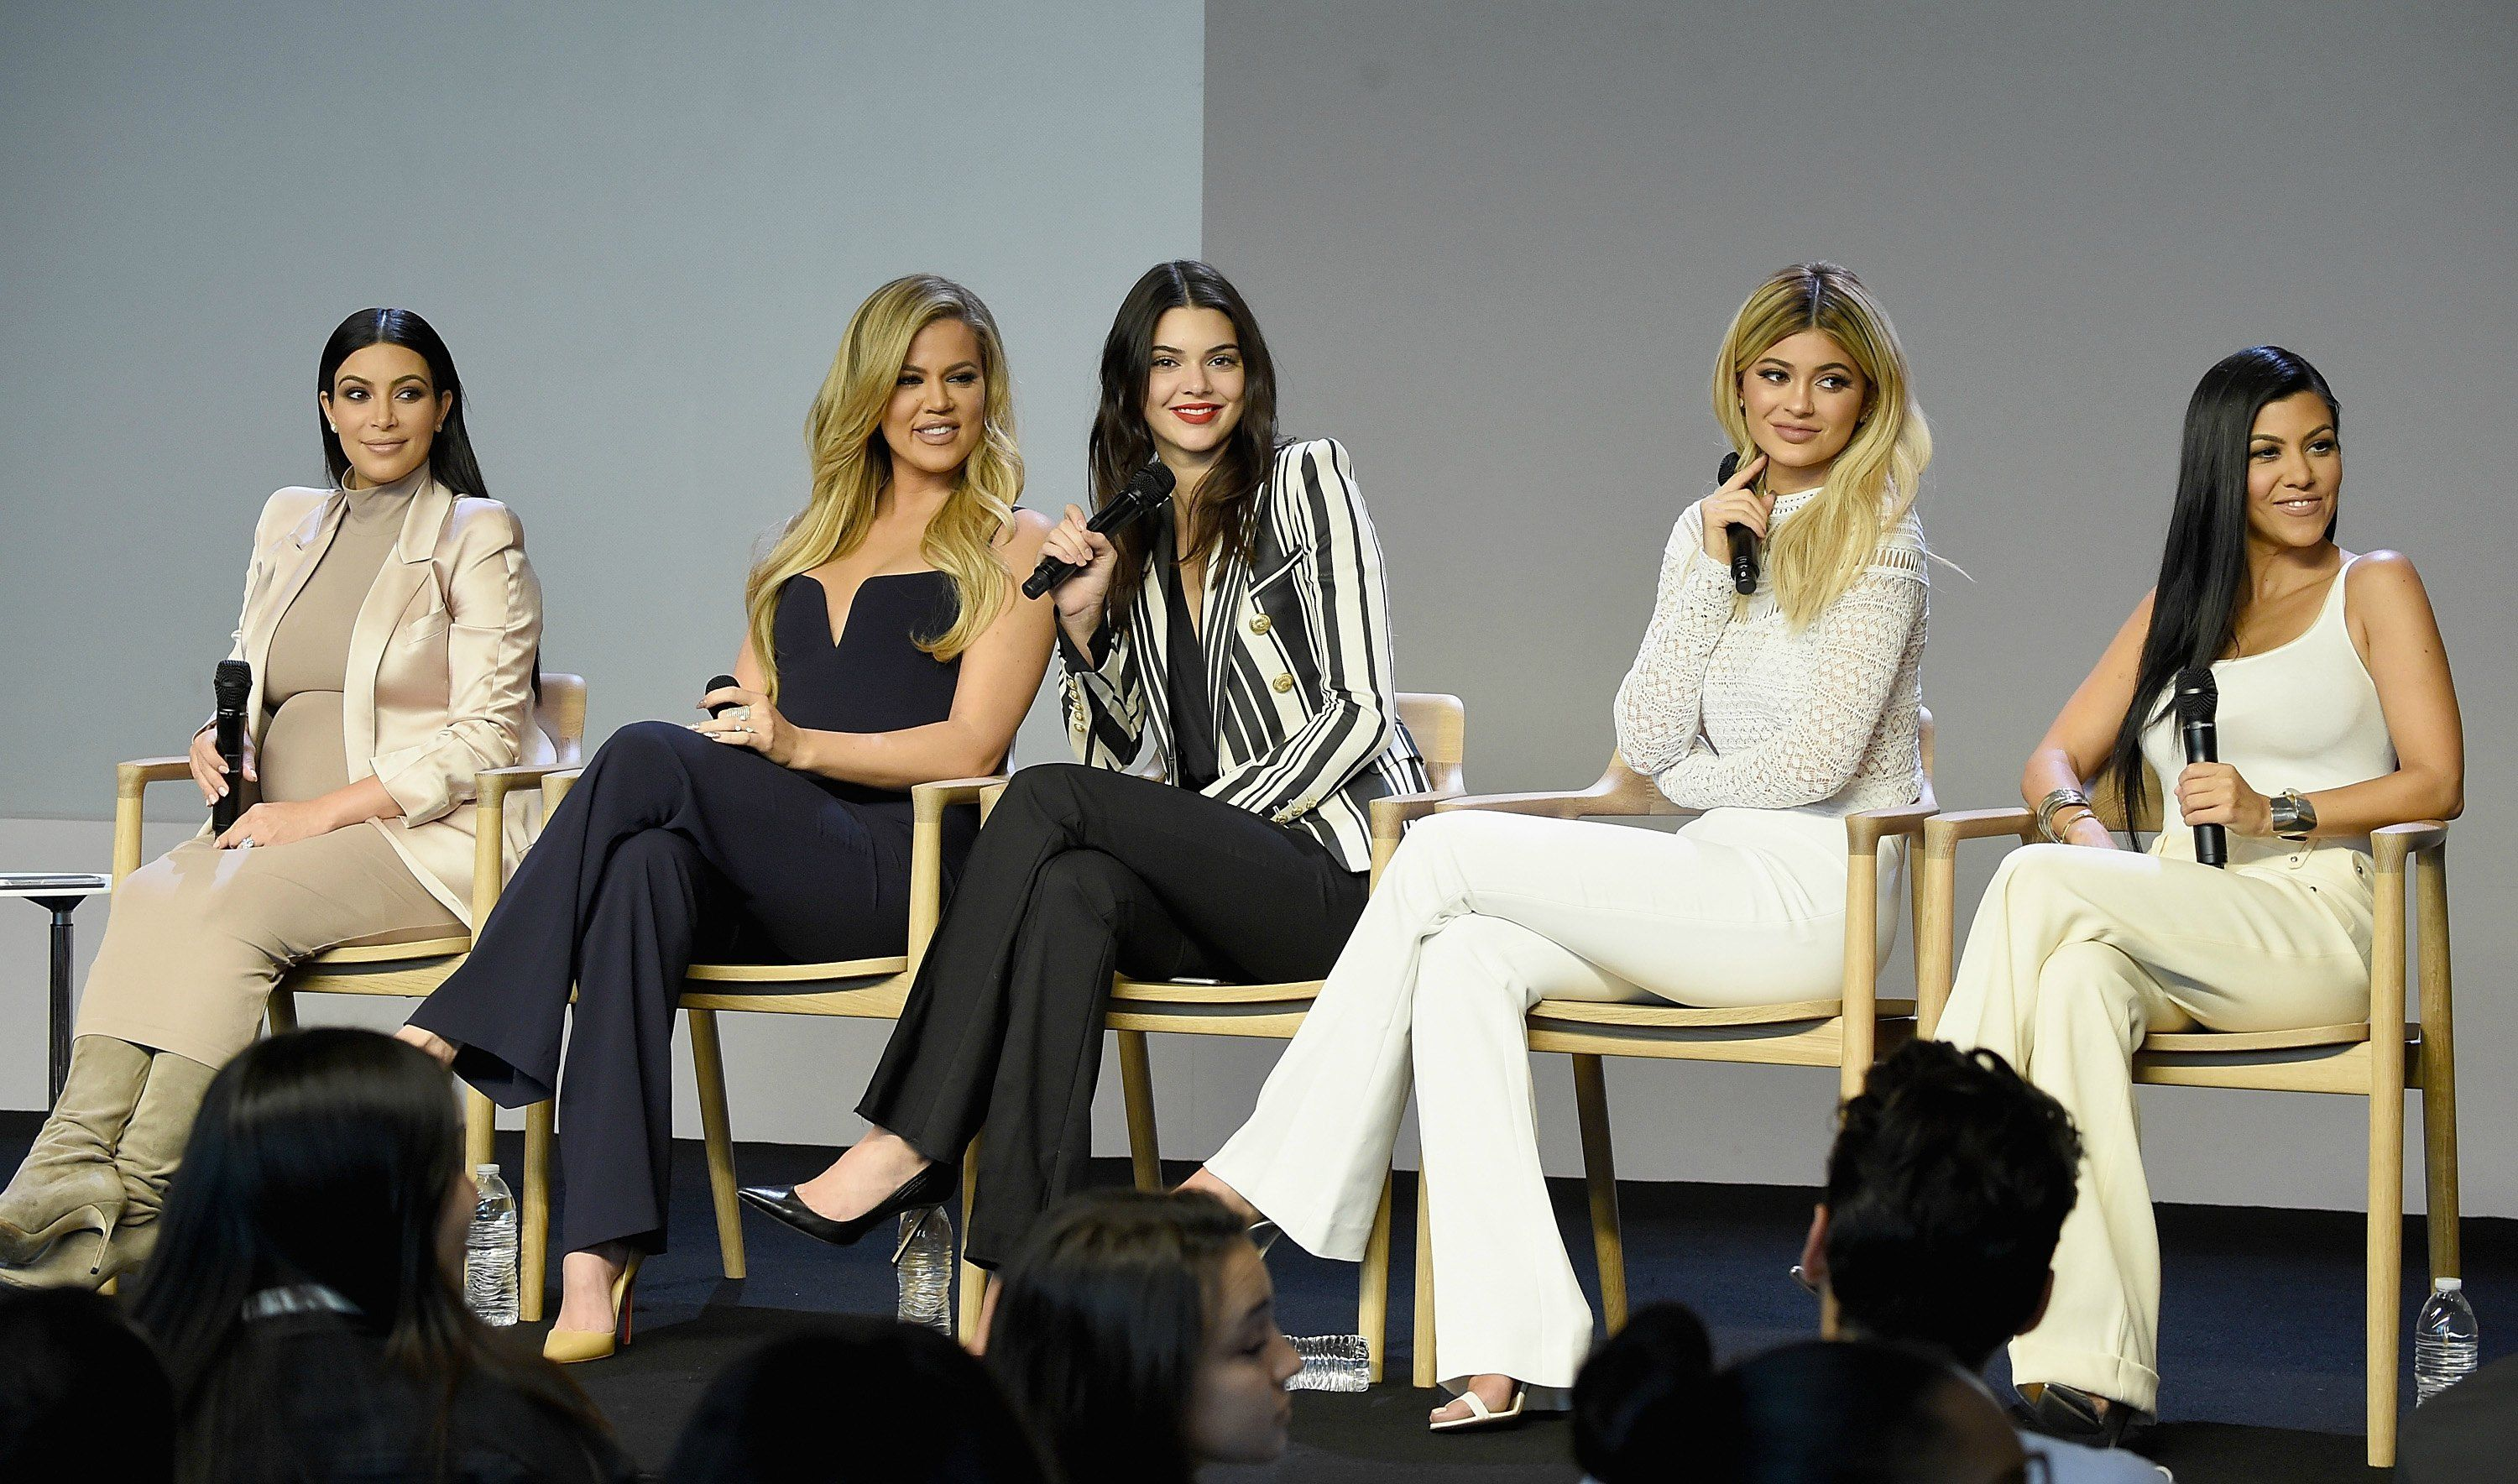 Get How Instagram The Posts Paid For Much Kardashians 0kX8nwOP